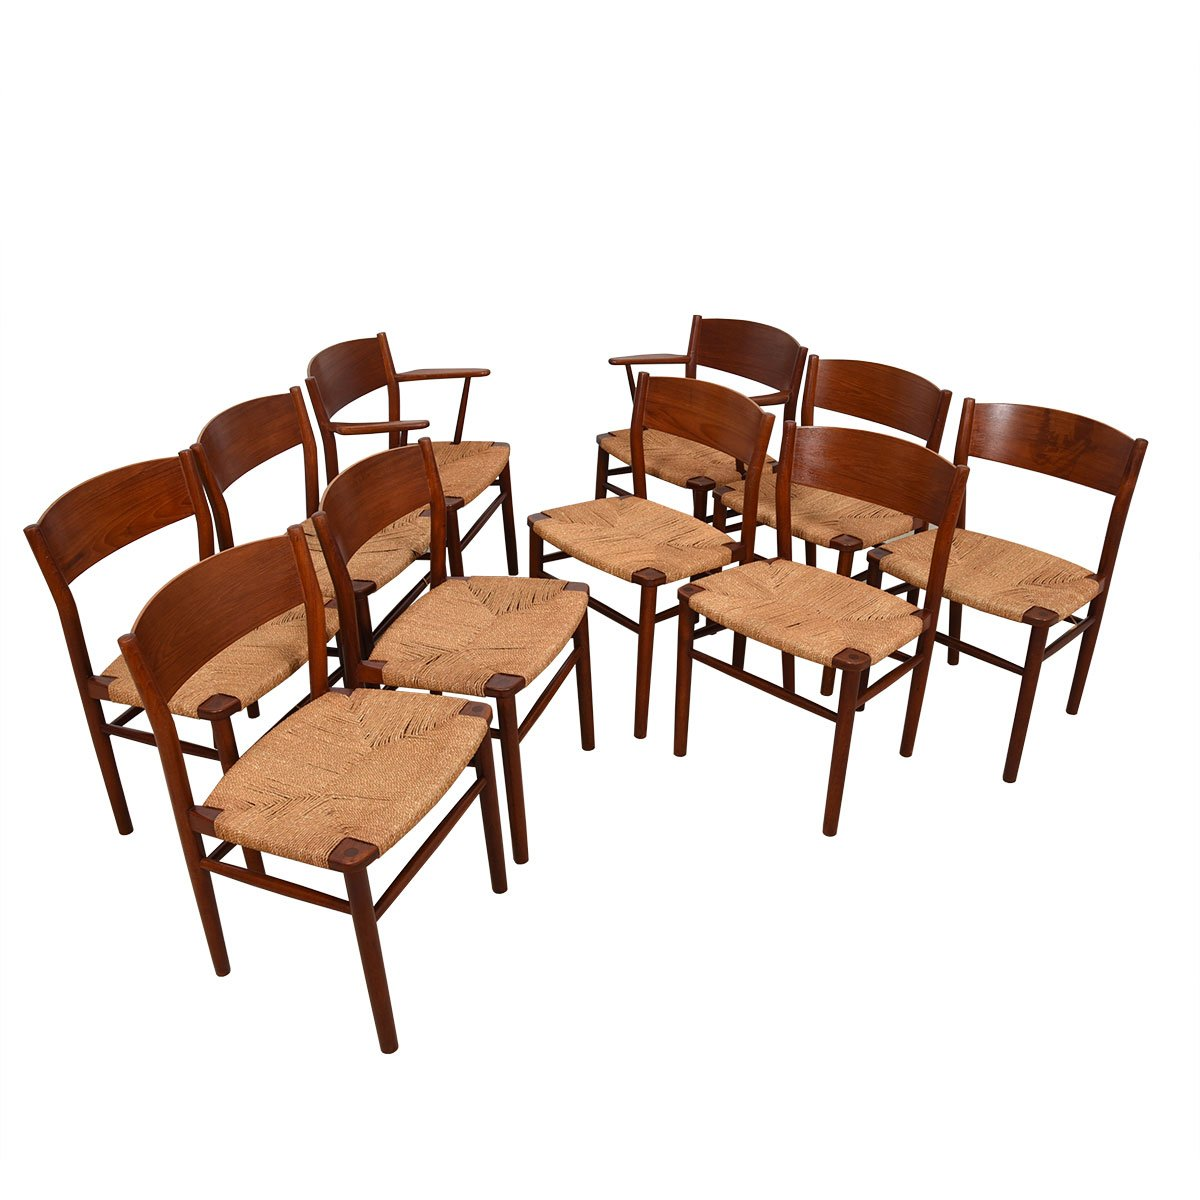 Set of 10 (2 Arm + 8 Side) Peter Hvidt Danish Teak Dining Chairs.